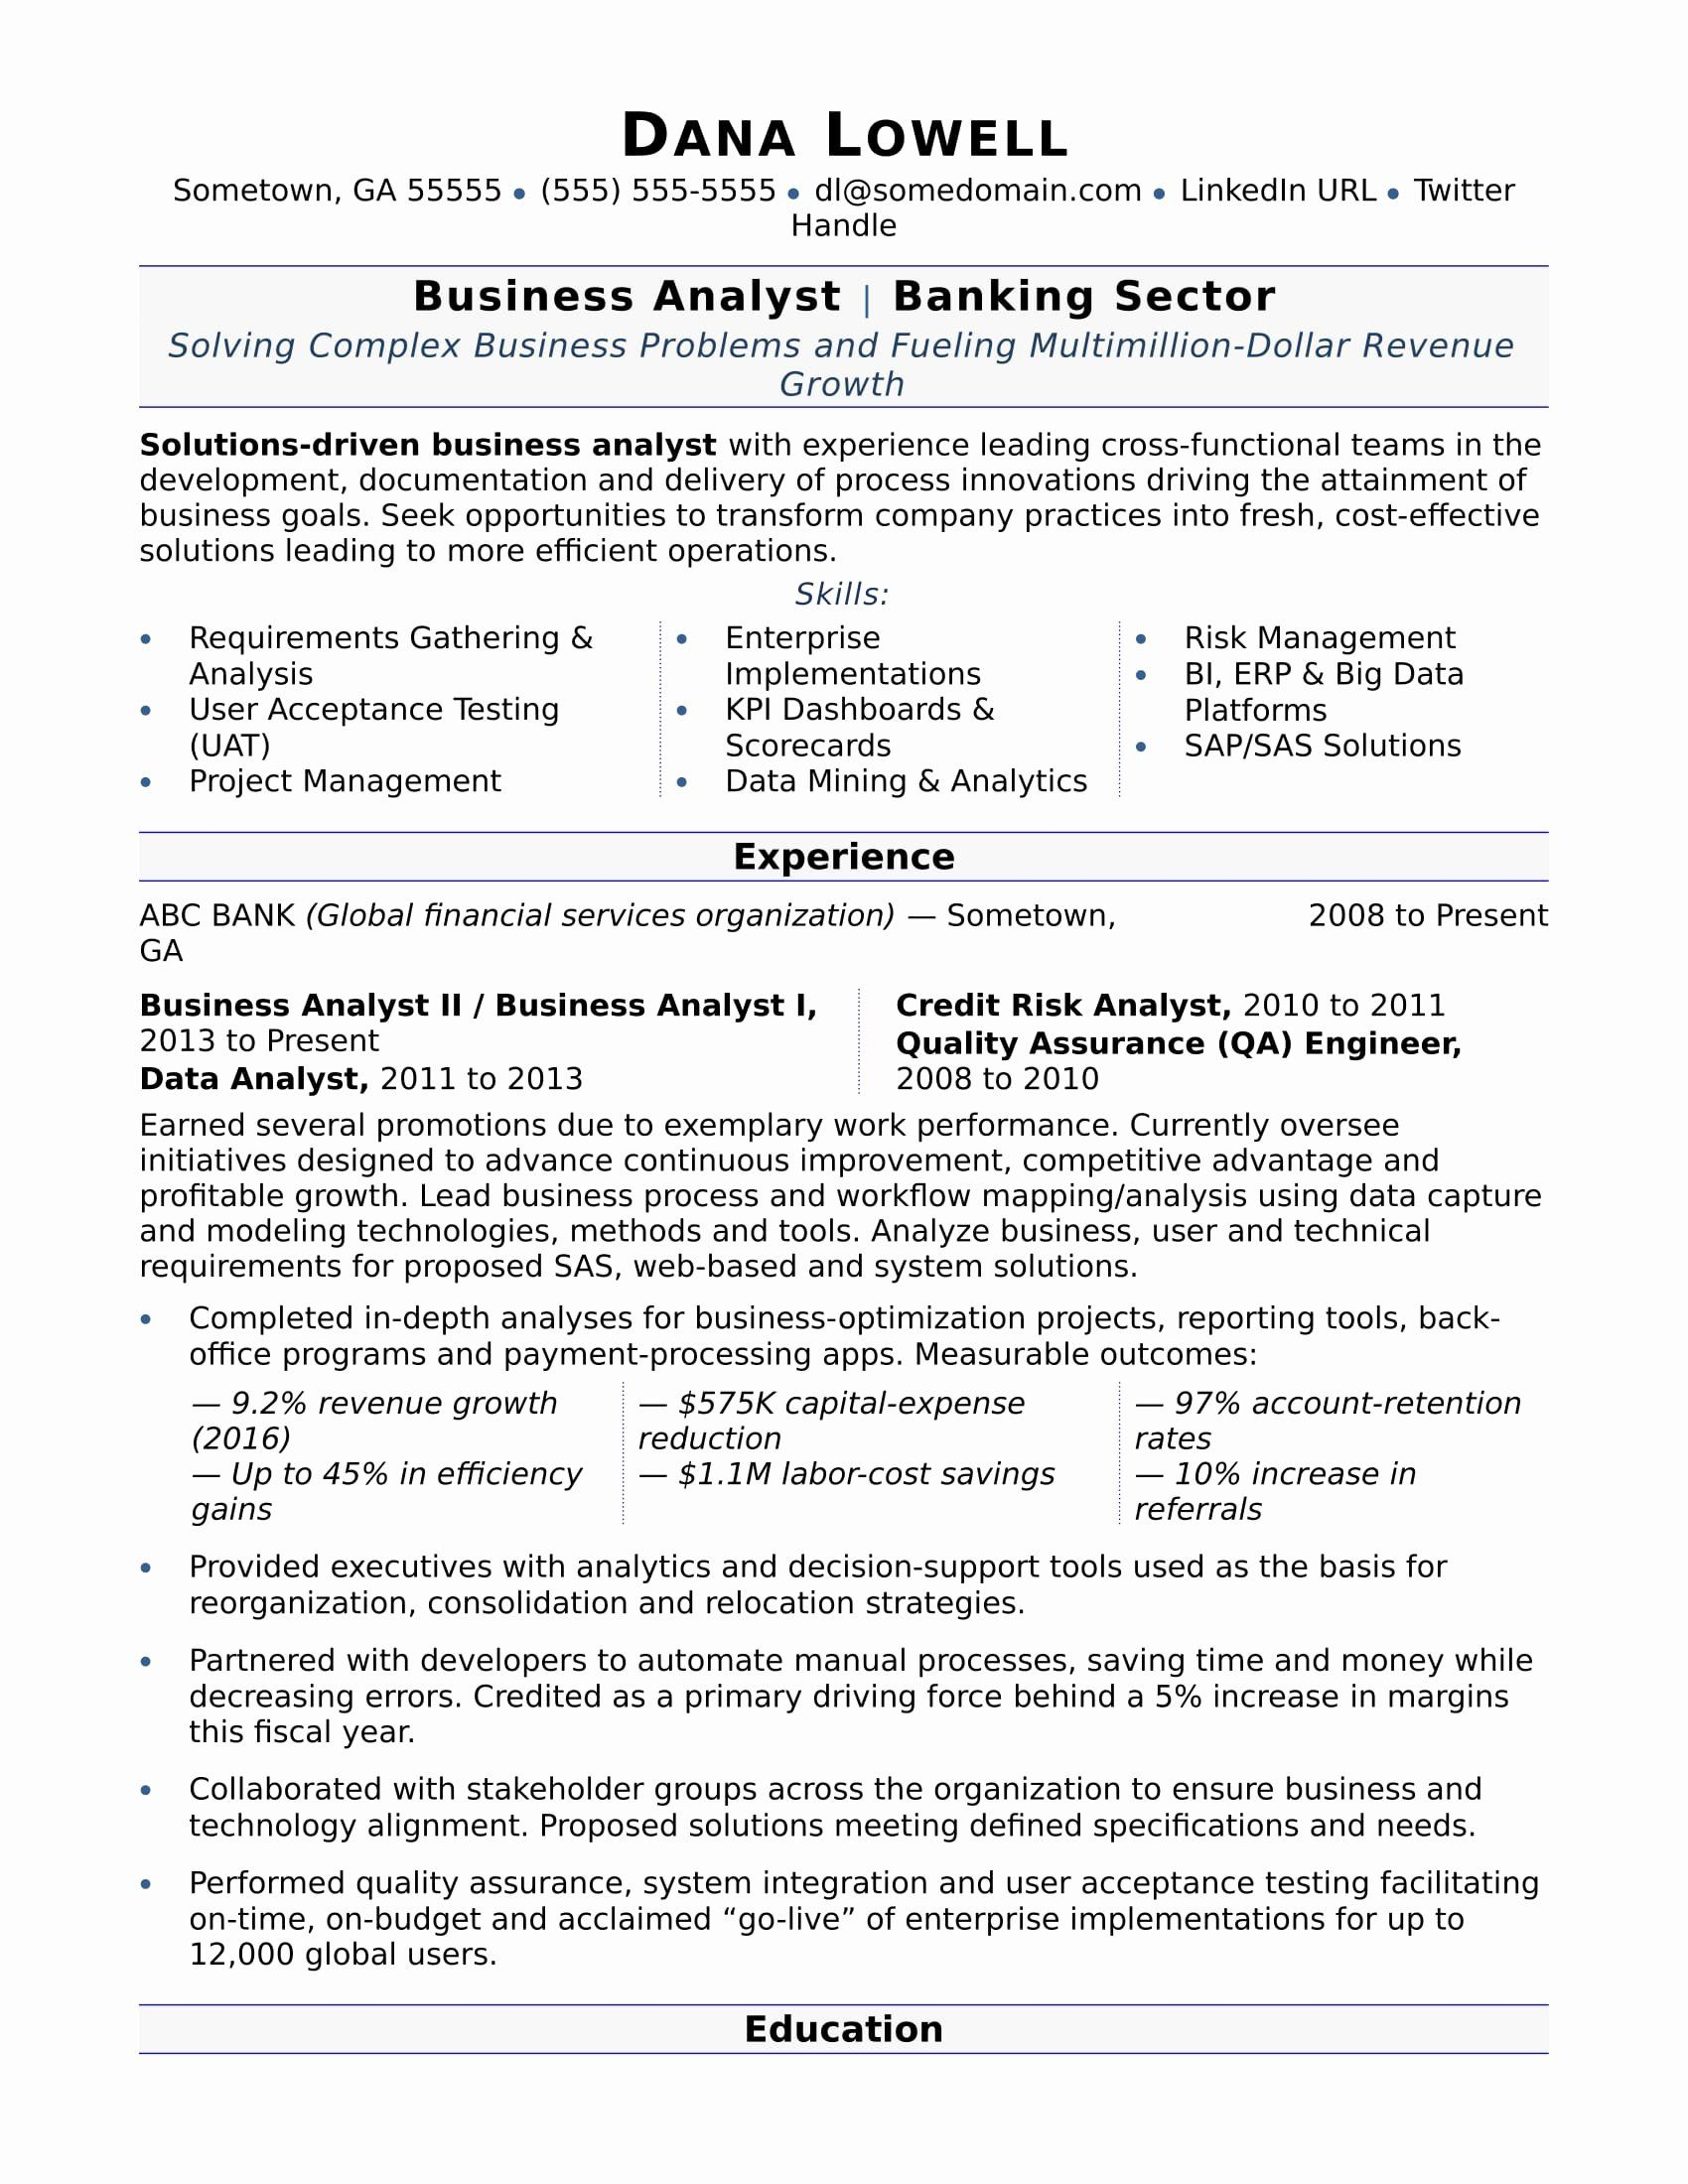 Business Analyst Resume Summary Examples Unique Business Analyst Resume Sample